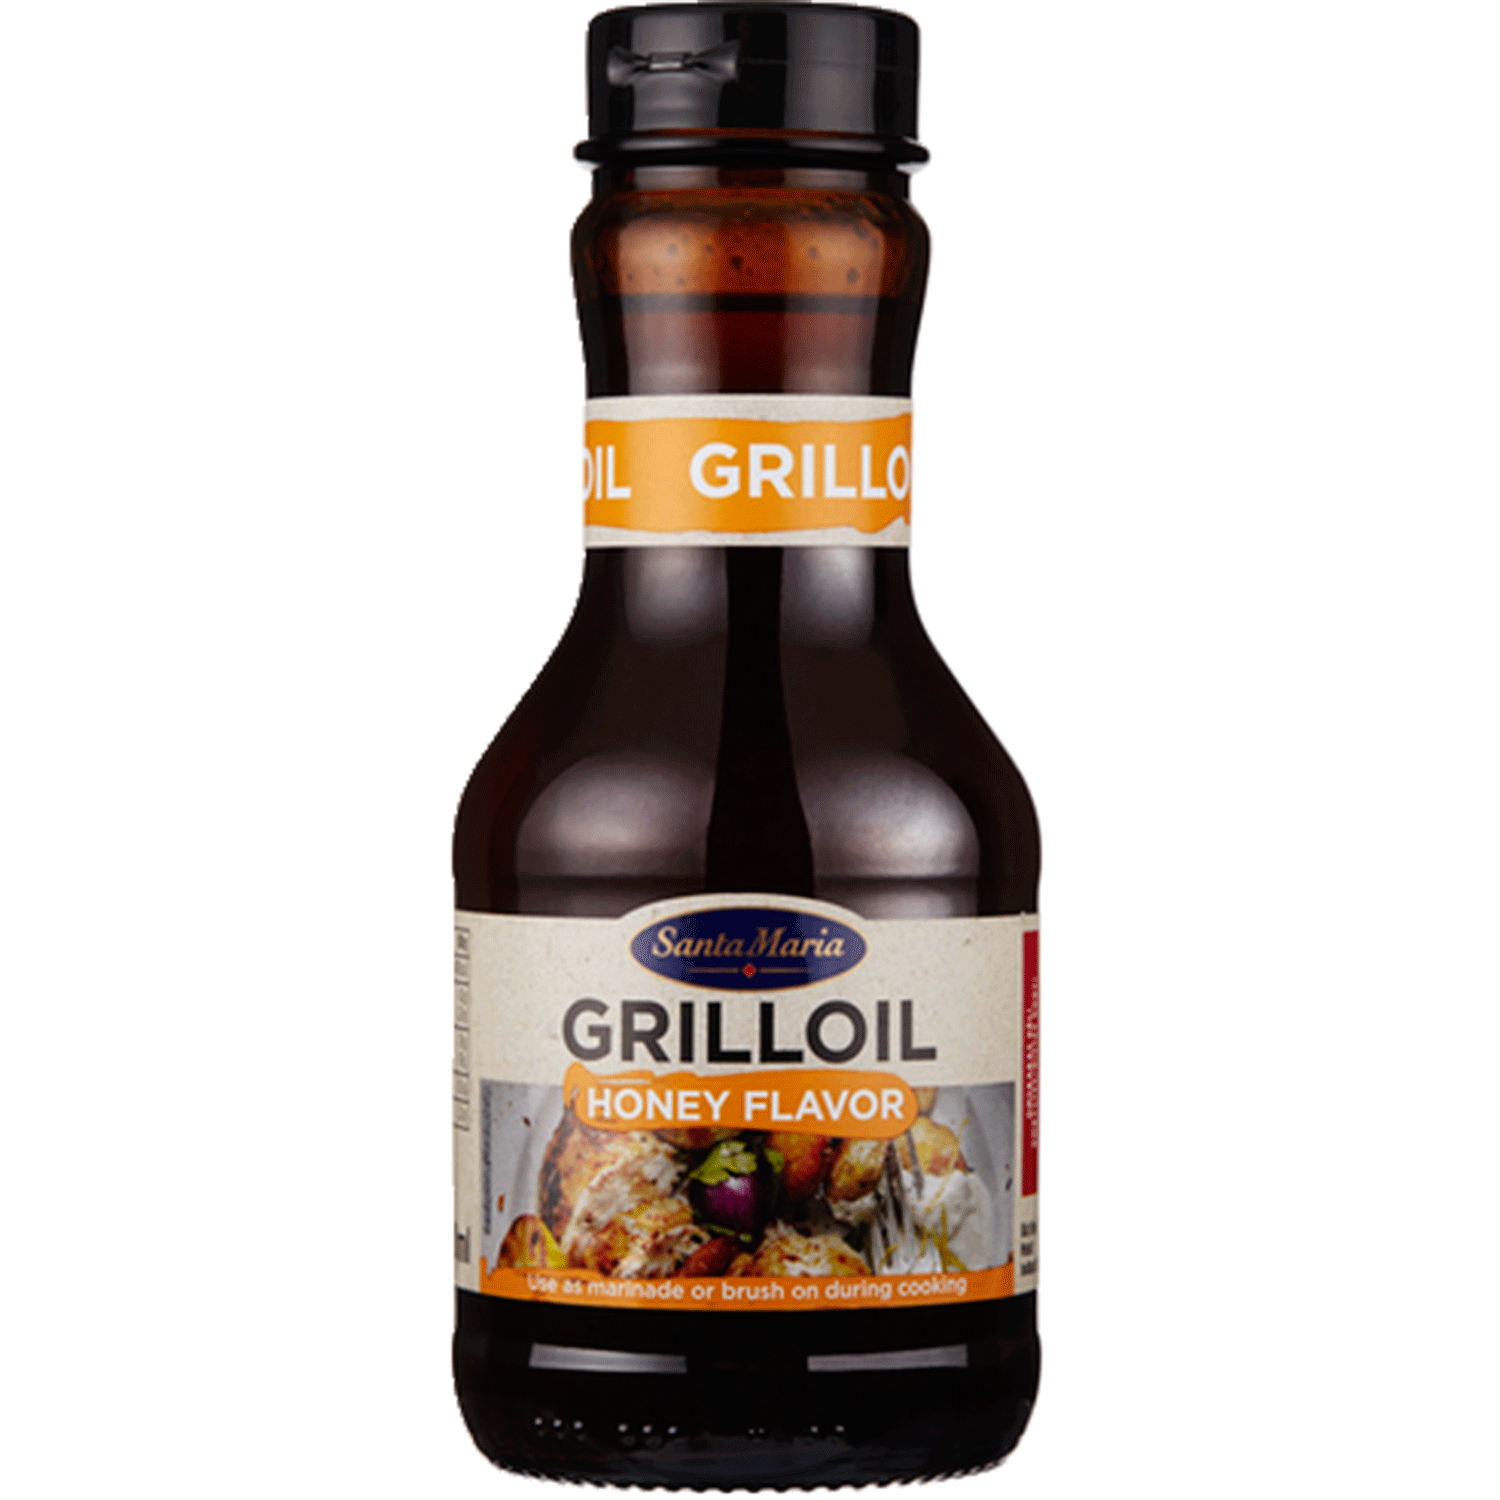 Grilloil Honey Flavor